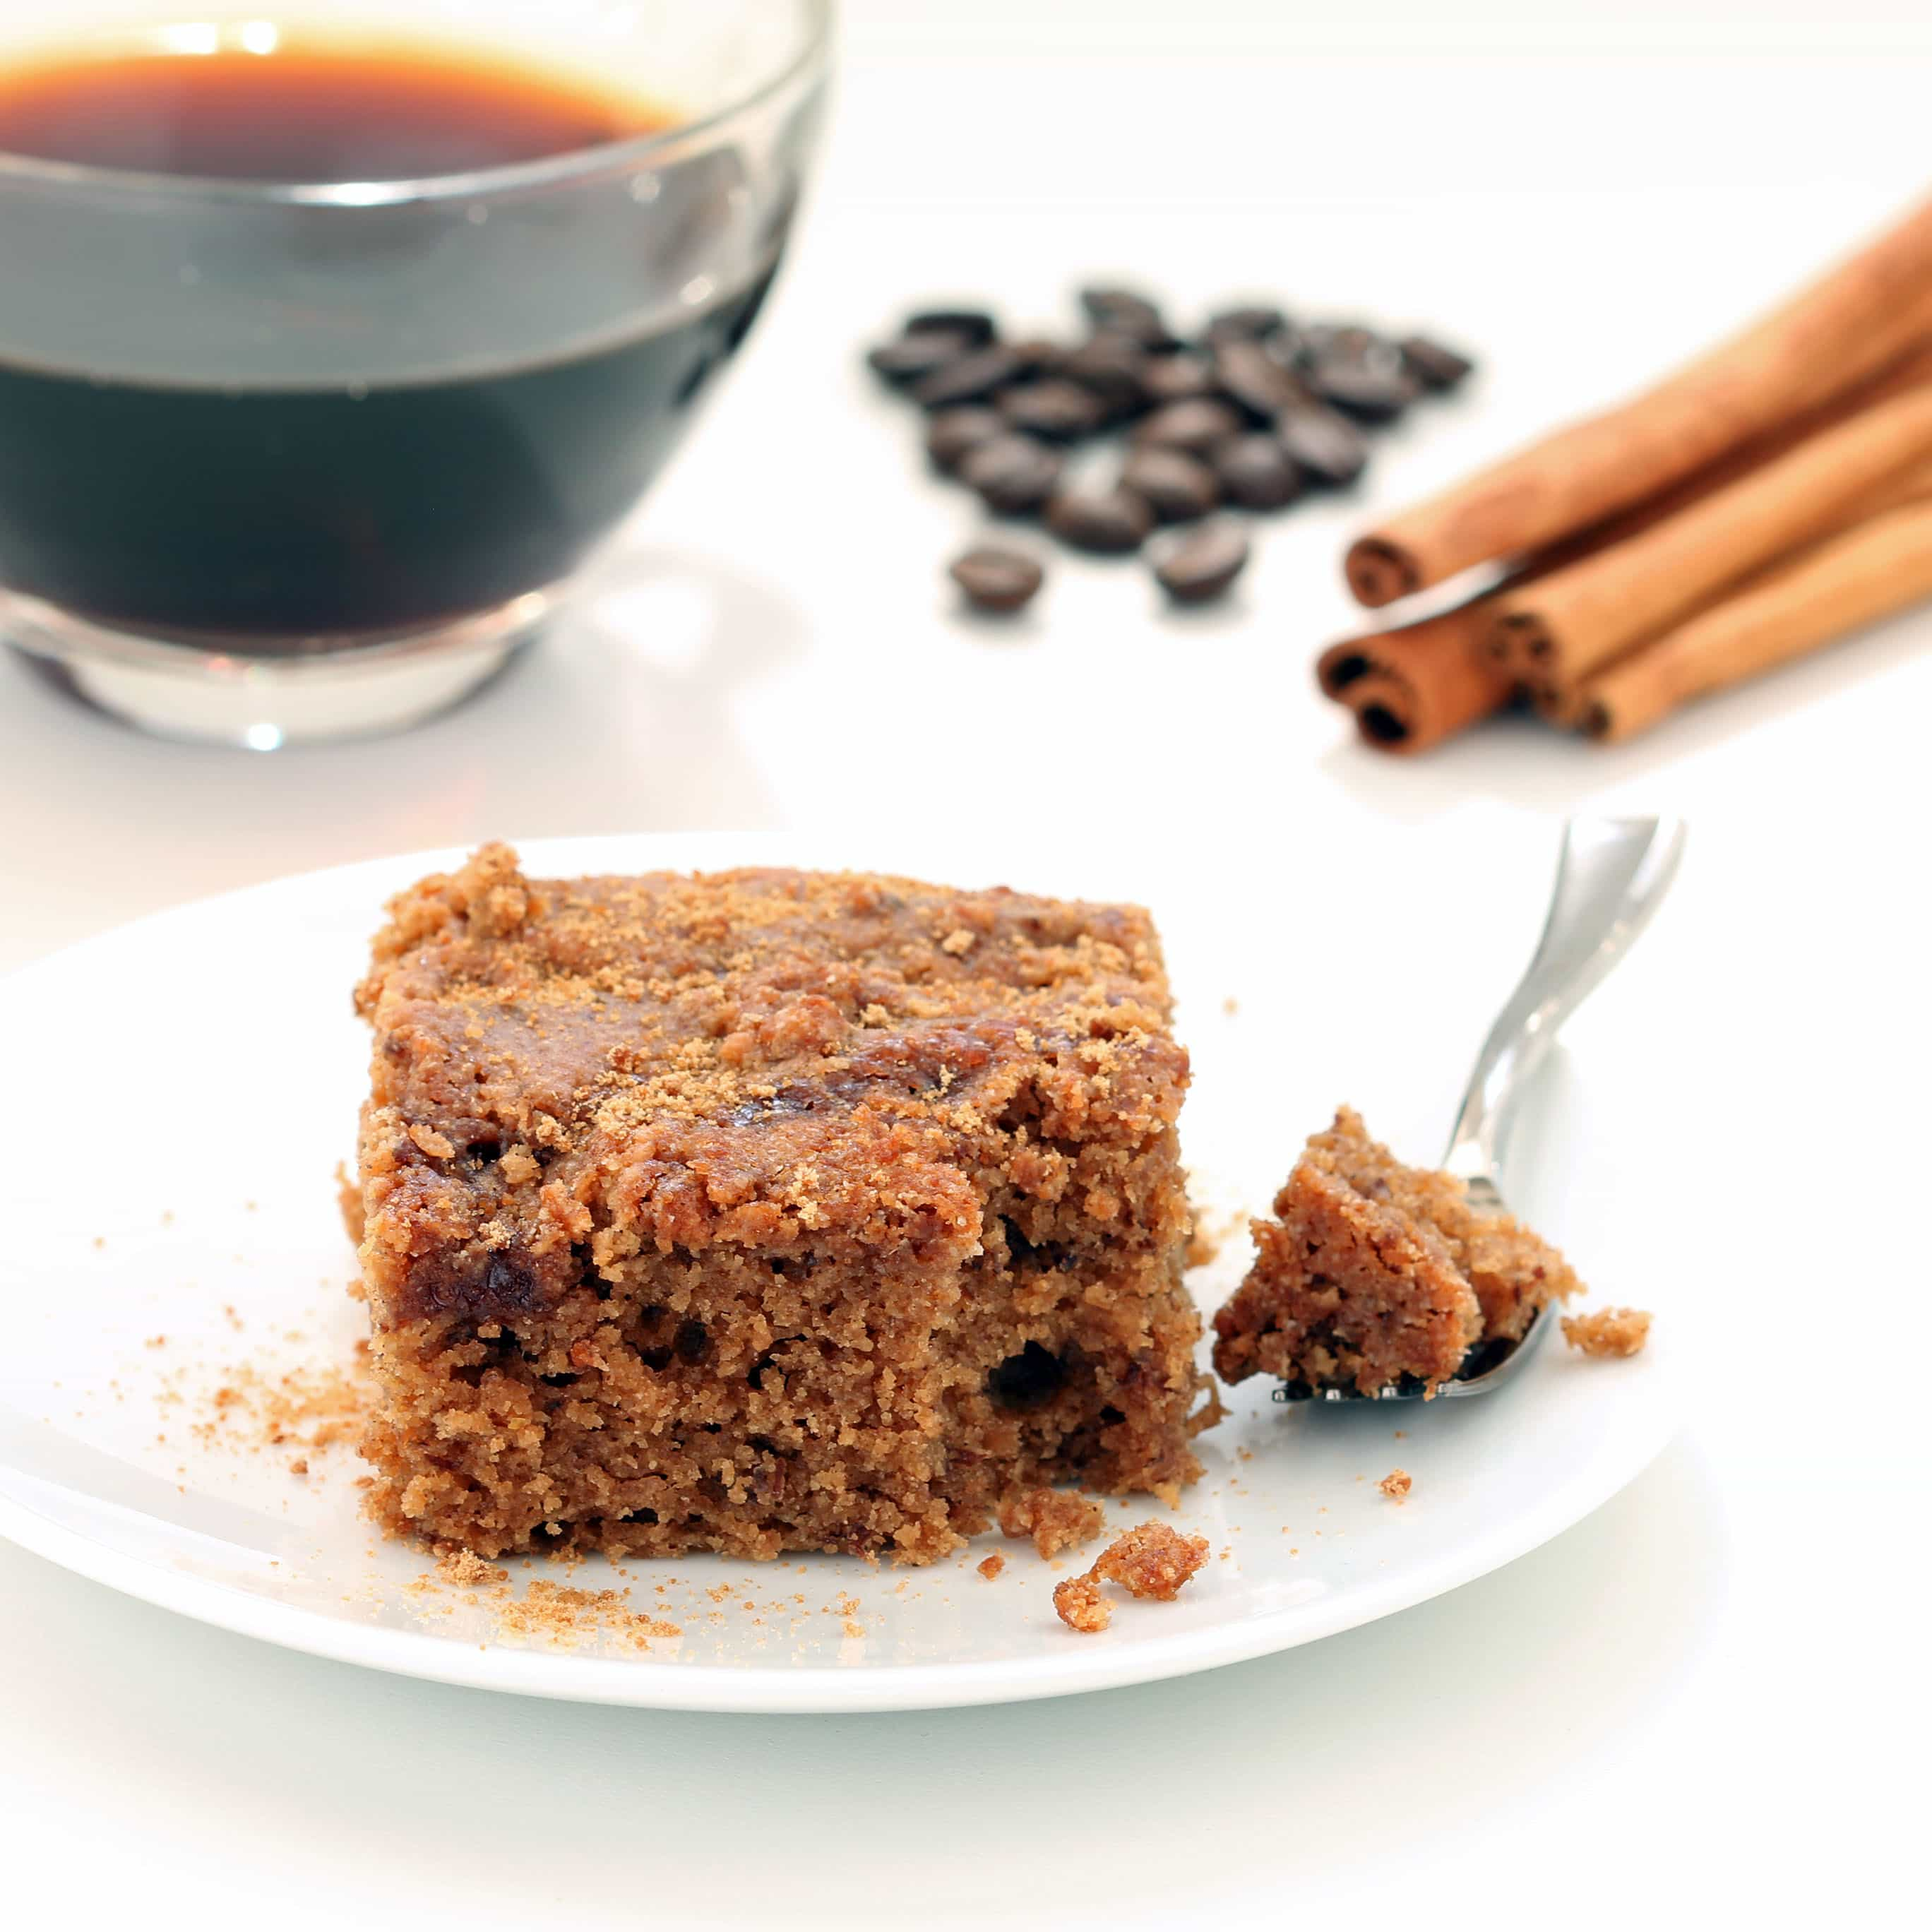 Gluten Free Coffee Cake (Plant-based, Refined Sugar-free)